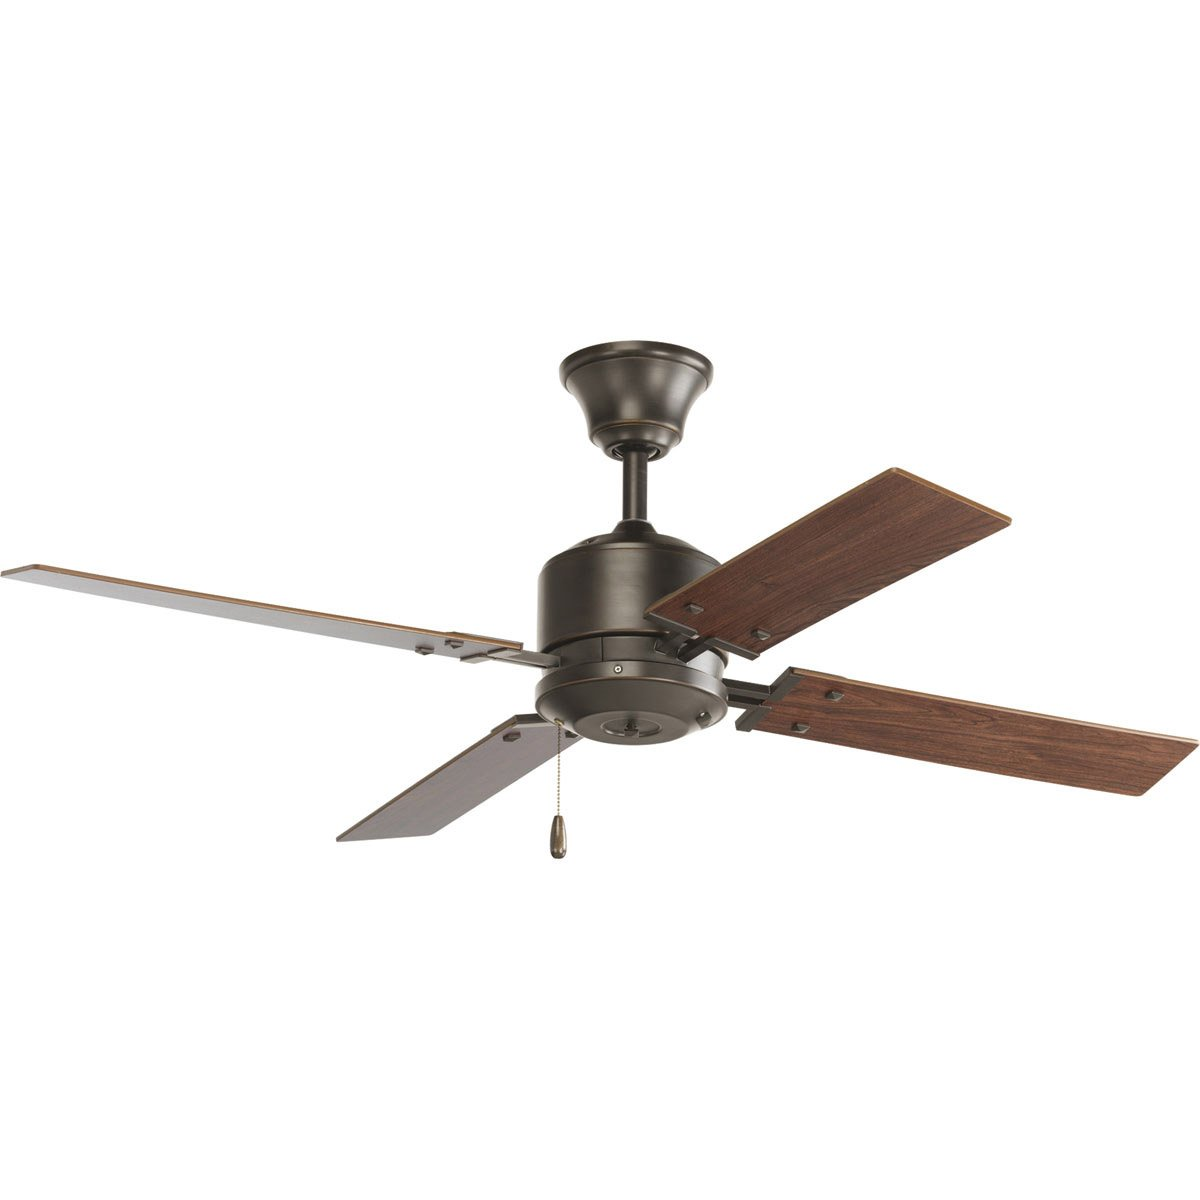 Progress lighting p2531 20 52 inch 4 blade ceiling fan amazon mozeypictures Gallery